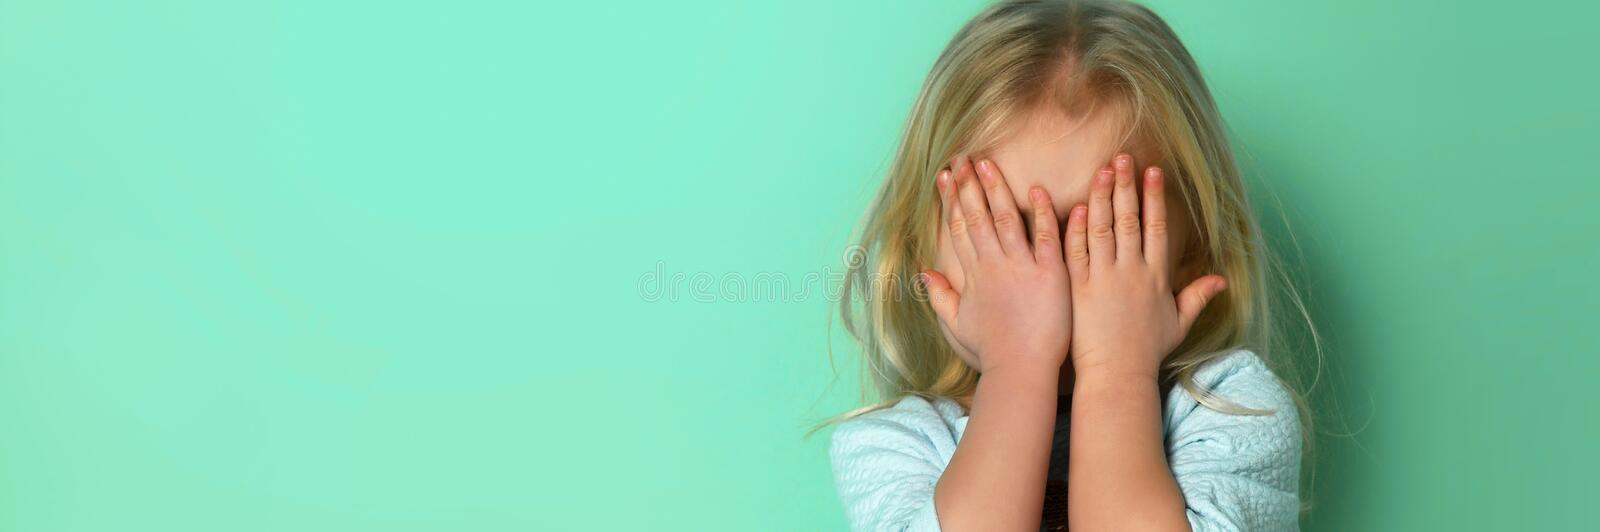 Cute little blonde girl covering his face for playing peekaboo, hide and seek stock photo